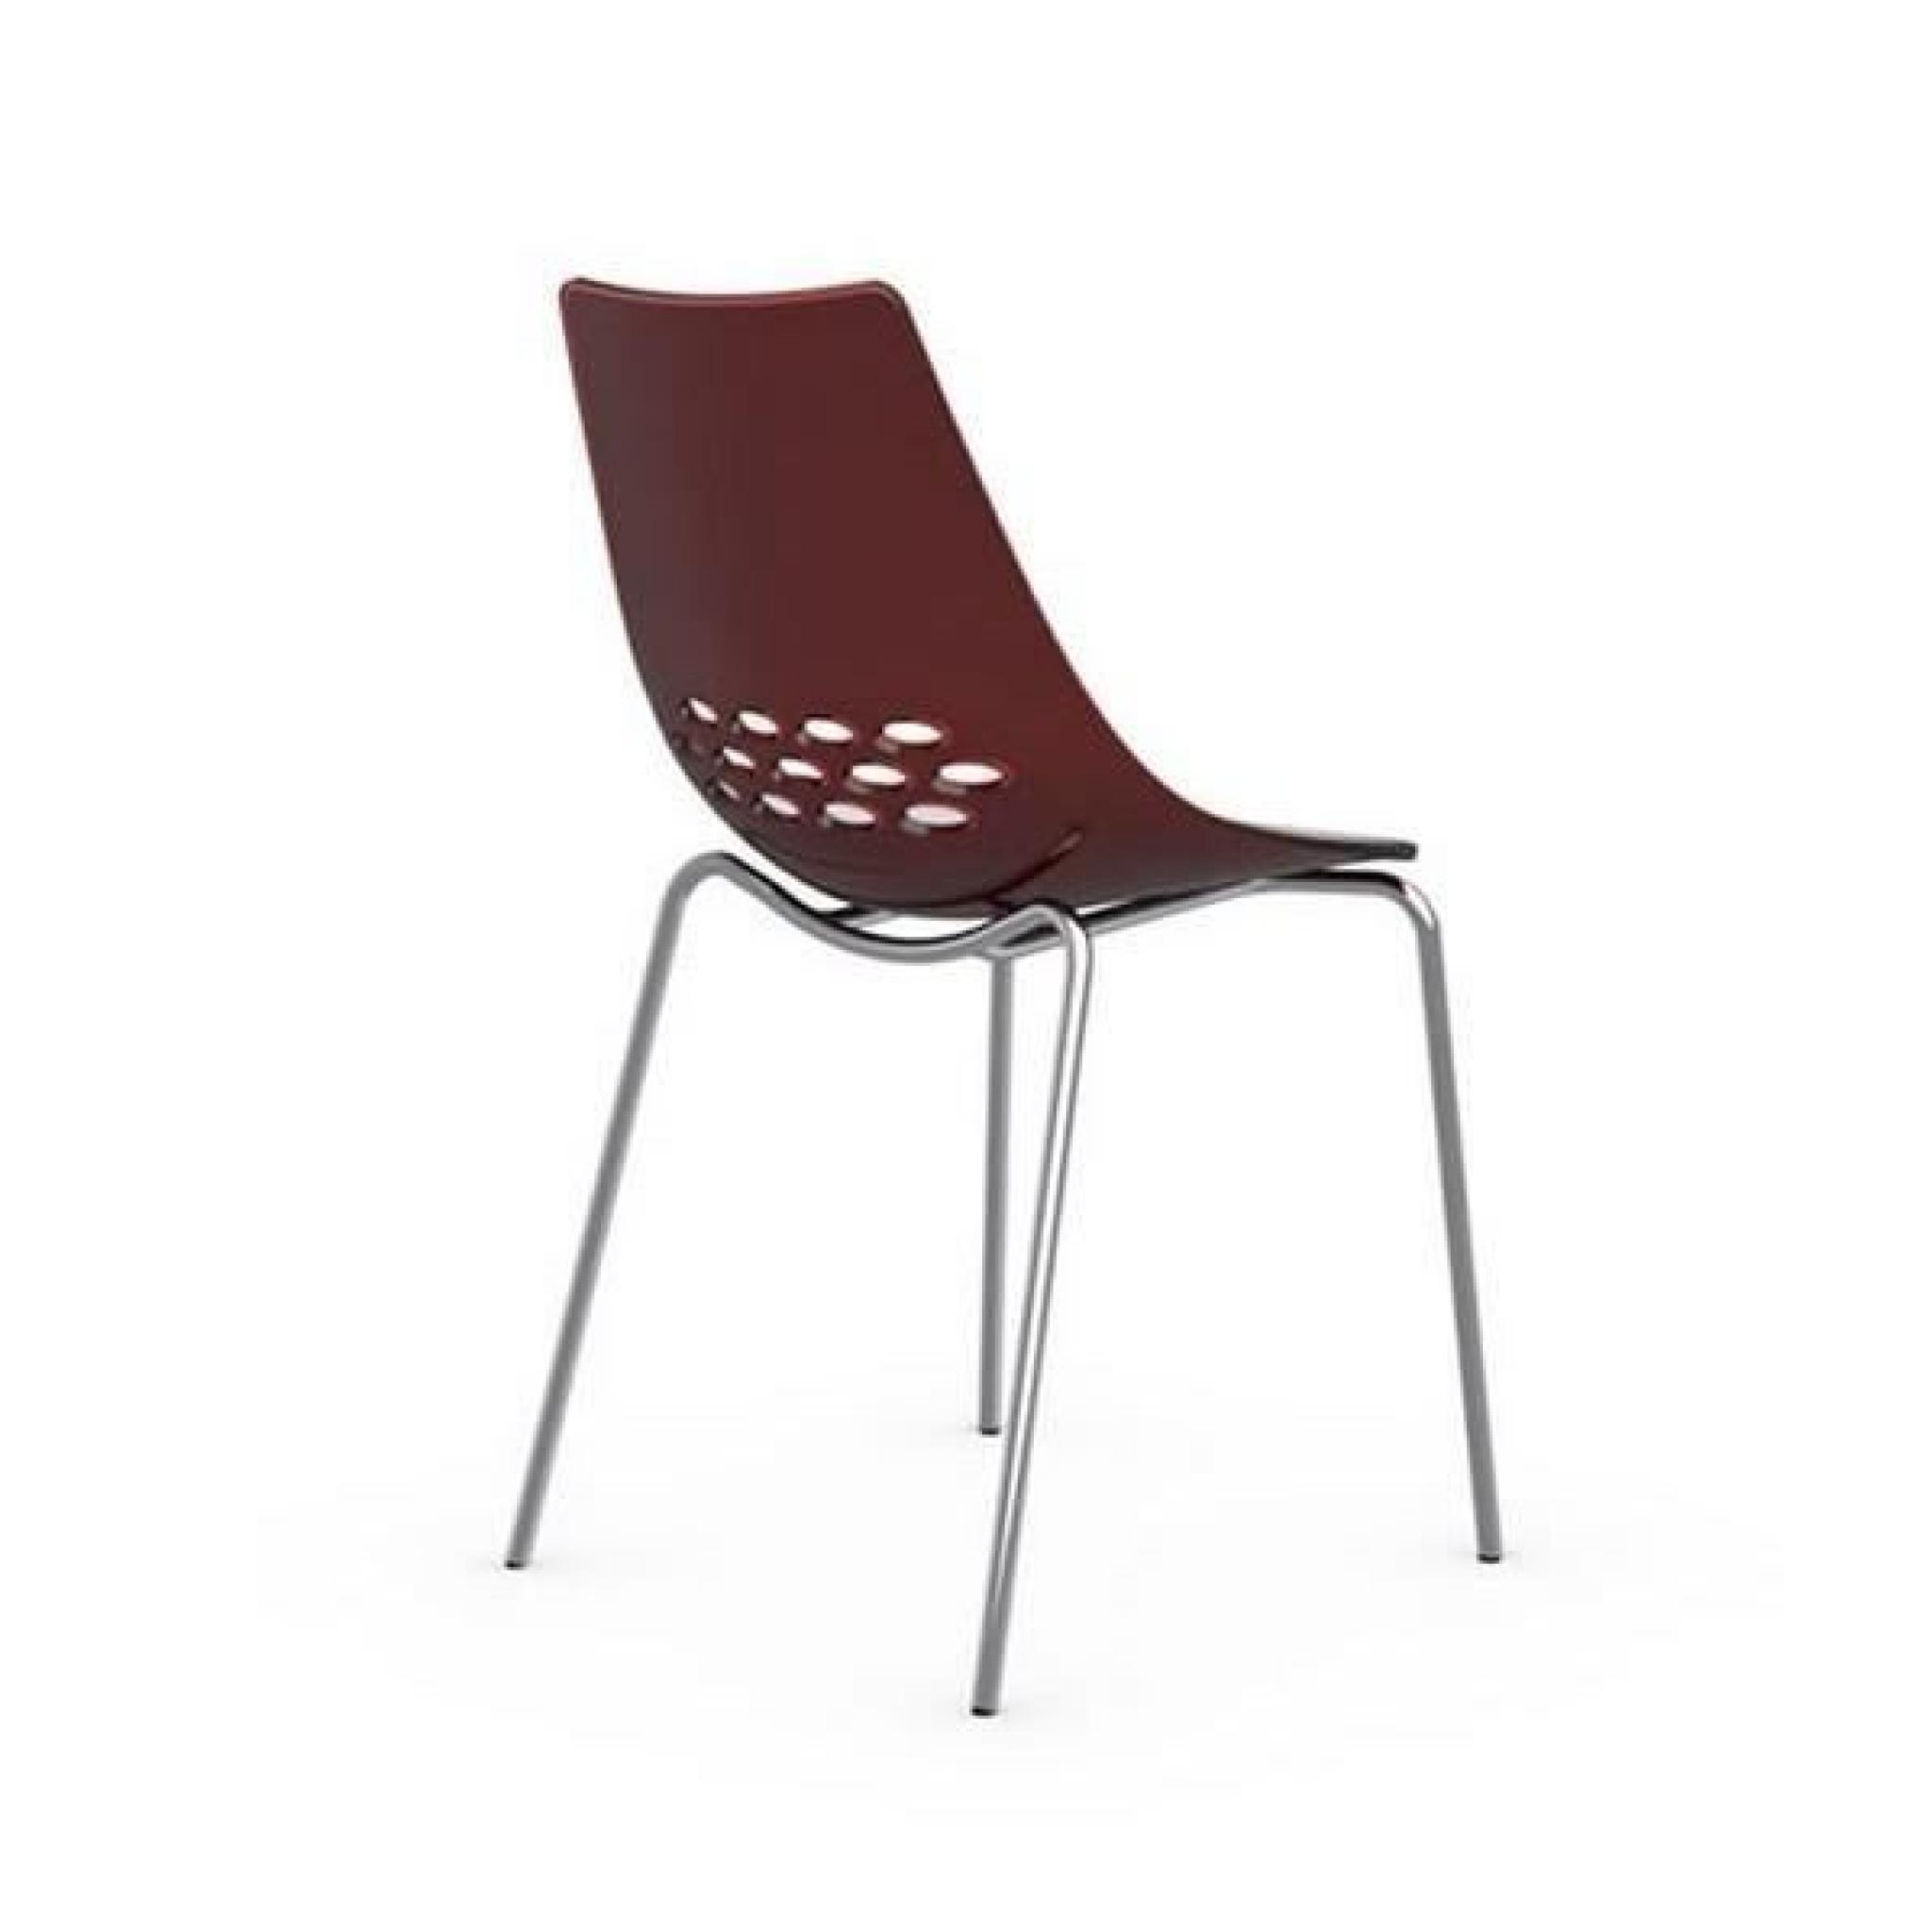 Chaise design jam blanche brillante et rouge transparent - Chaise cuisine design pas cher ...